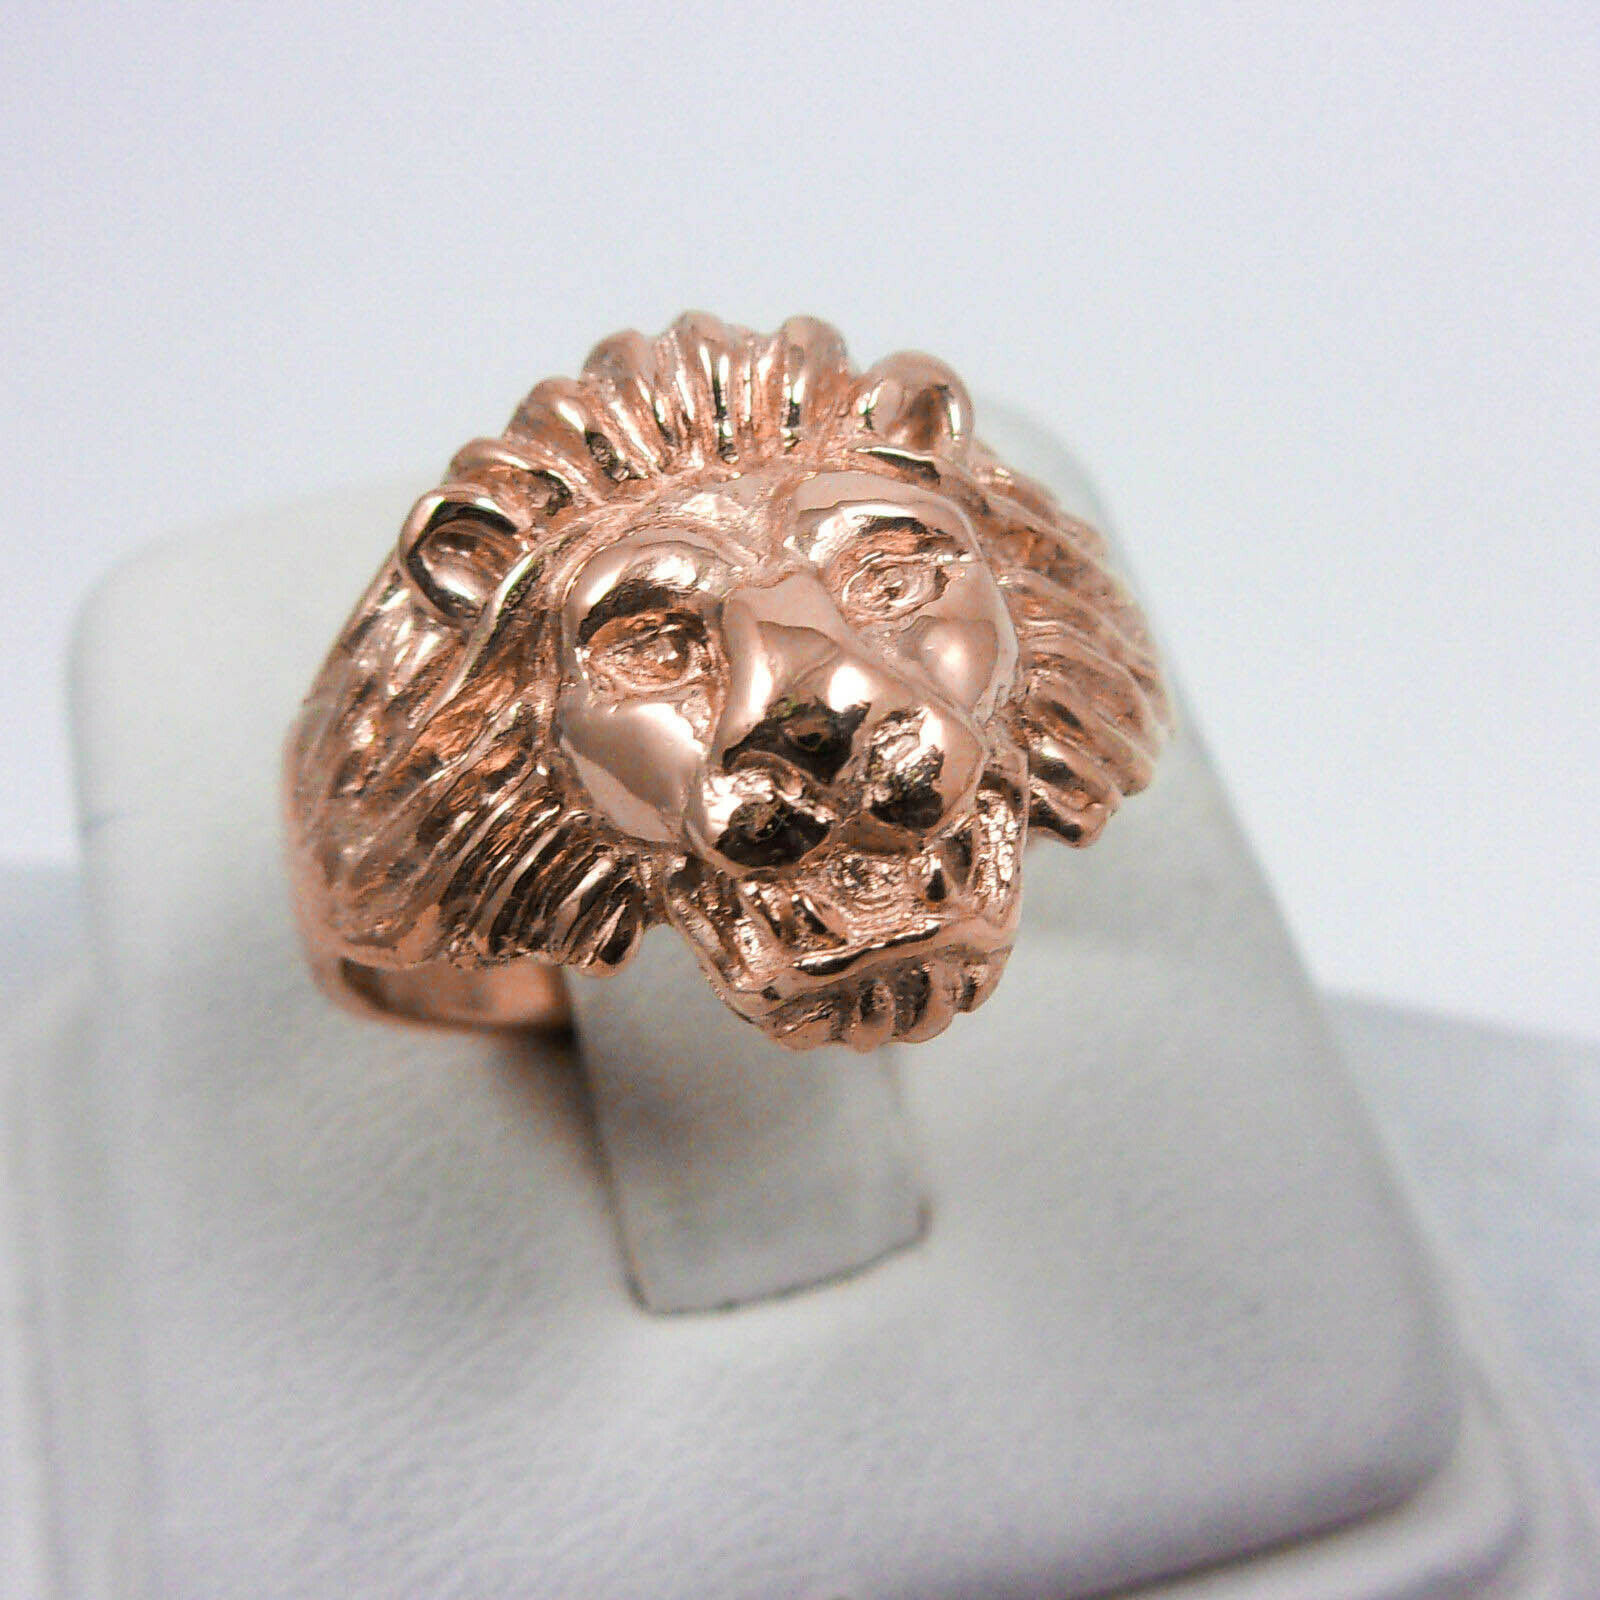 NEW Solid 10K pink gold Handcarved Large Heavy Mens Lion Head Ring Size 5 - 15